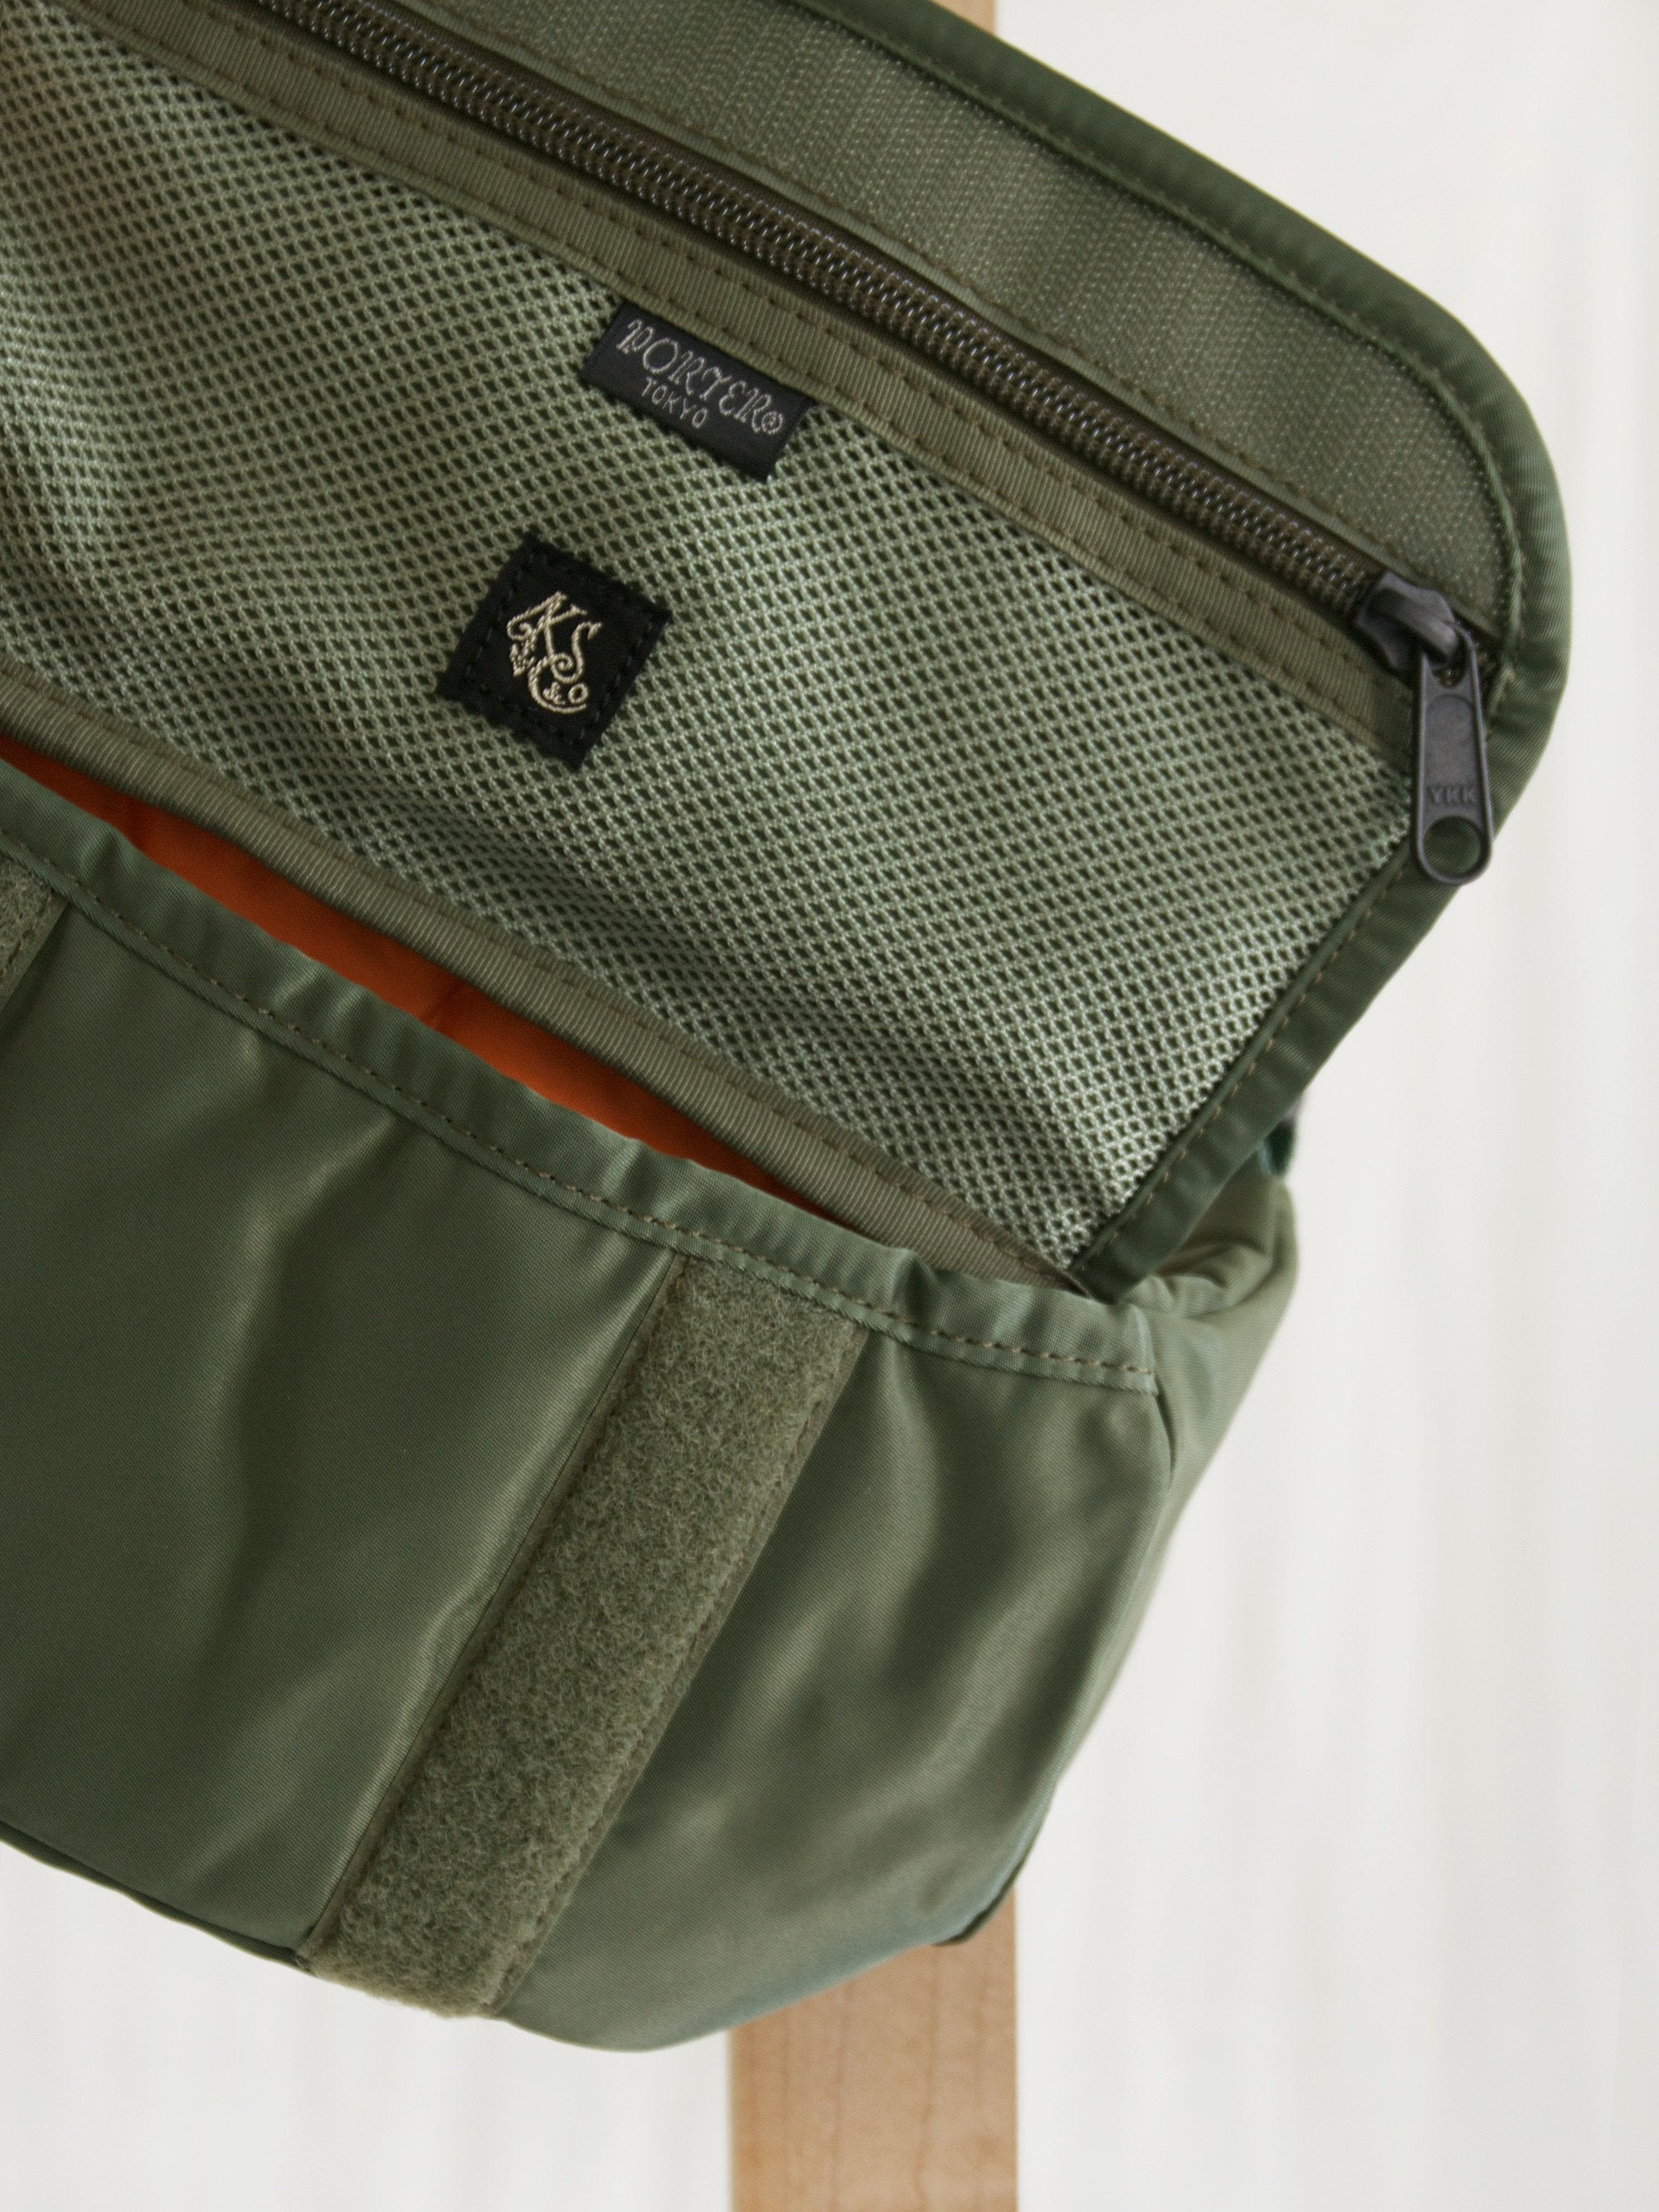 Namu Shop - Kaptain Sunshine Travellers Fanny Bag - Airforce Green